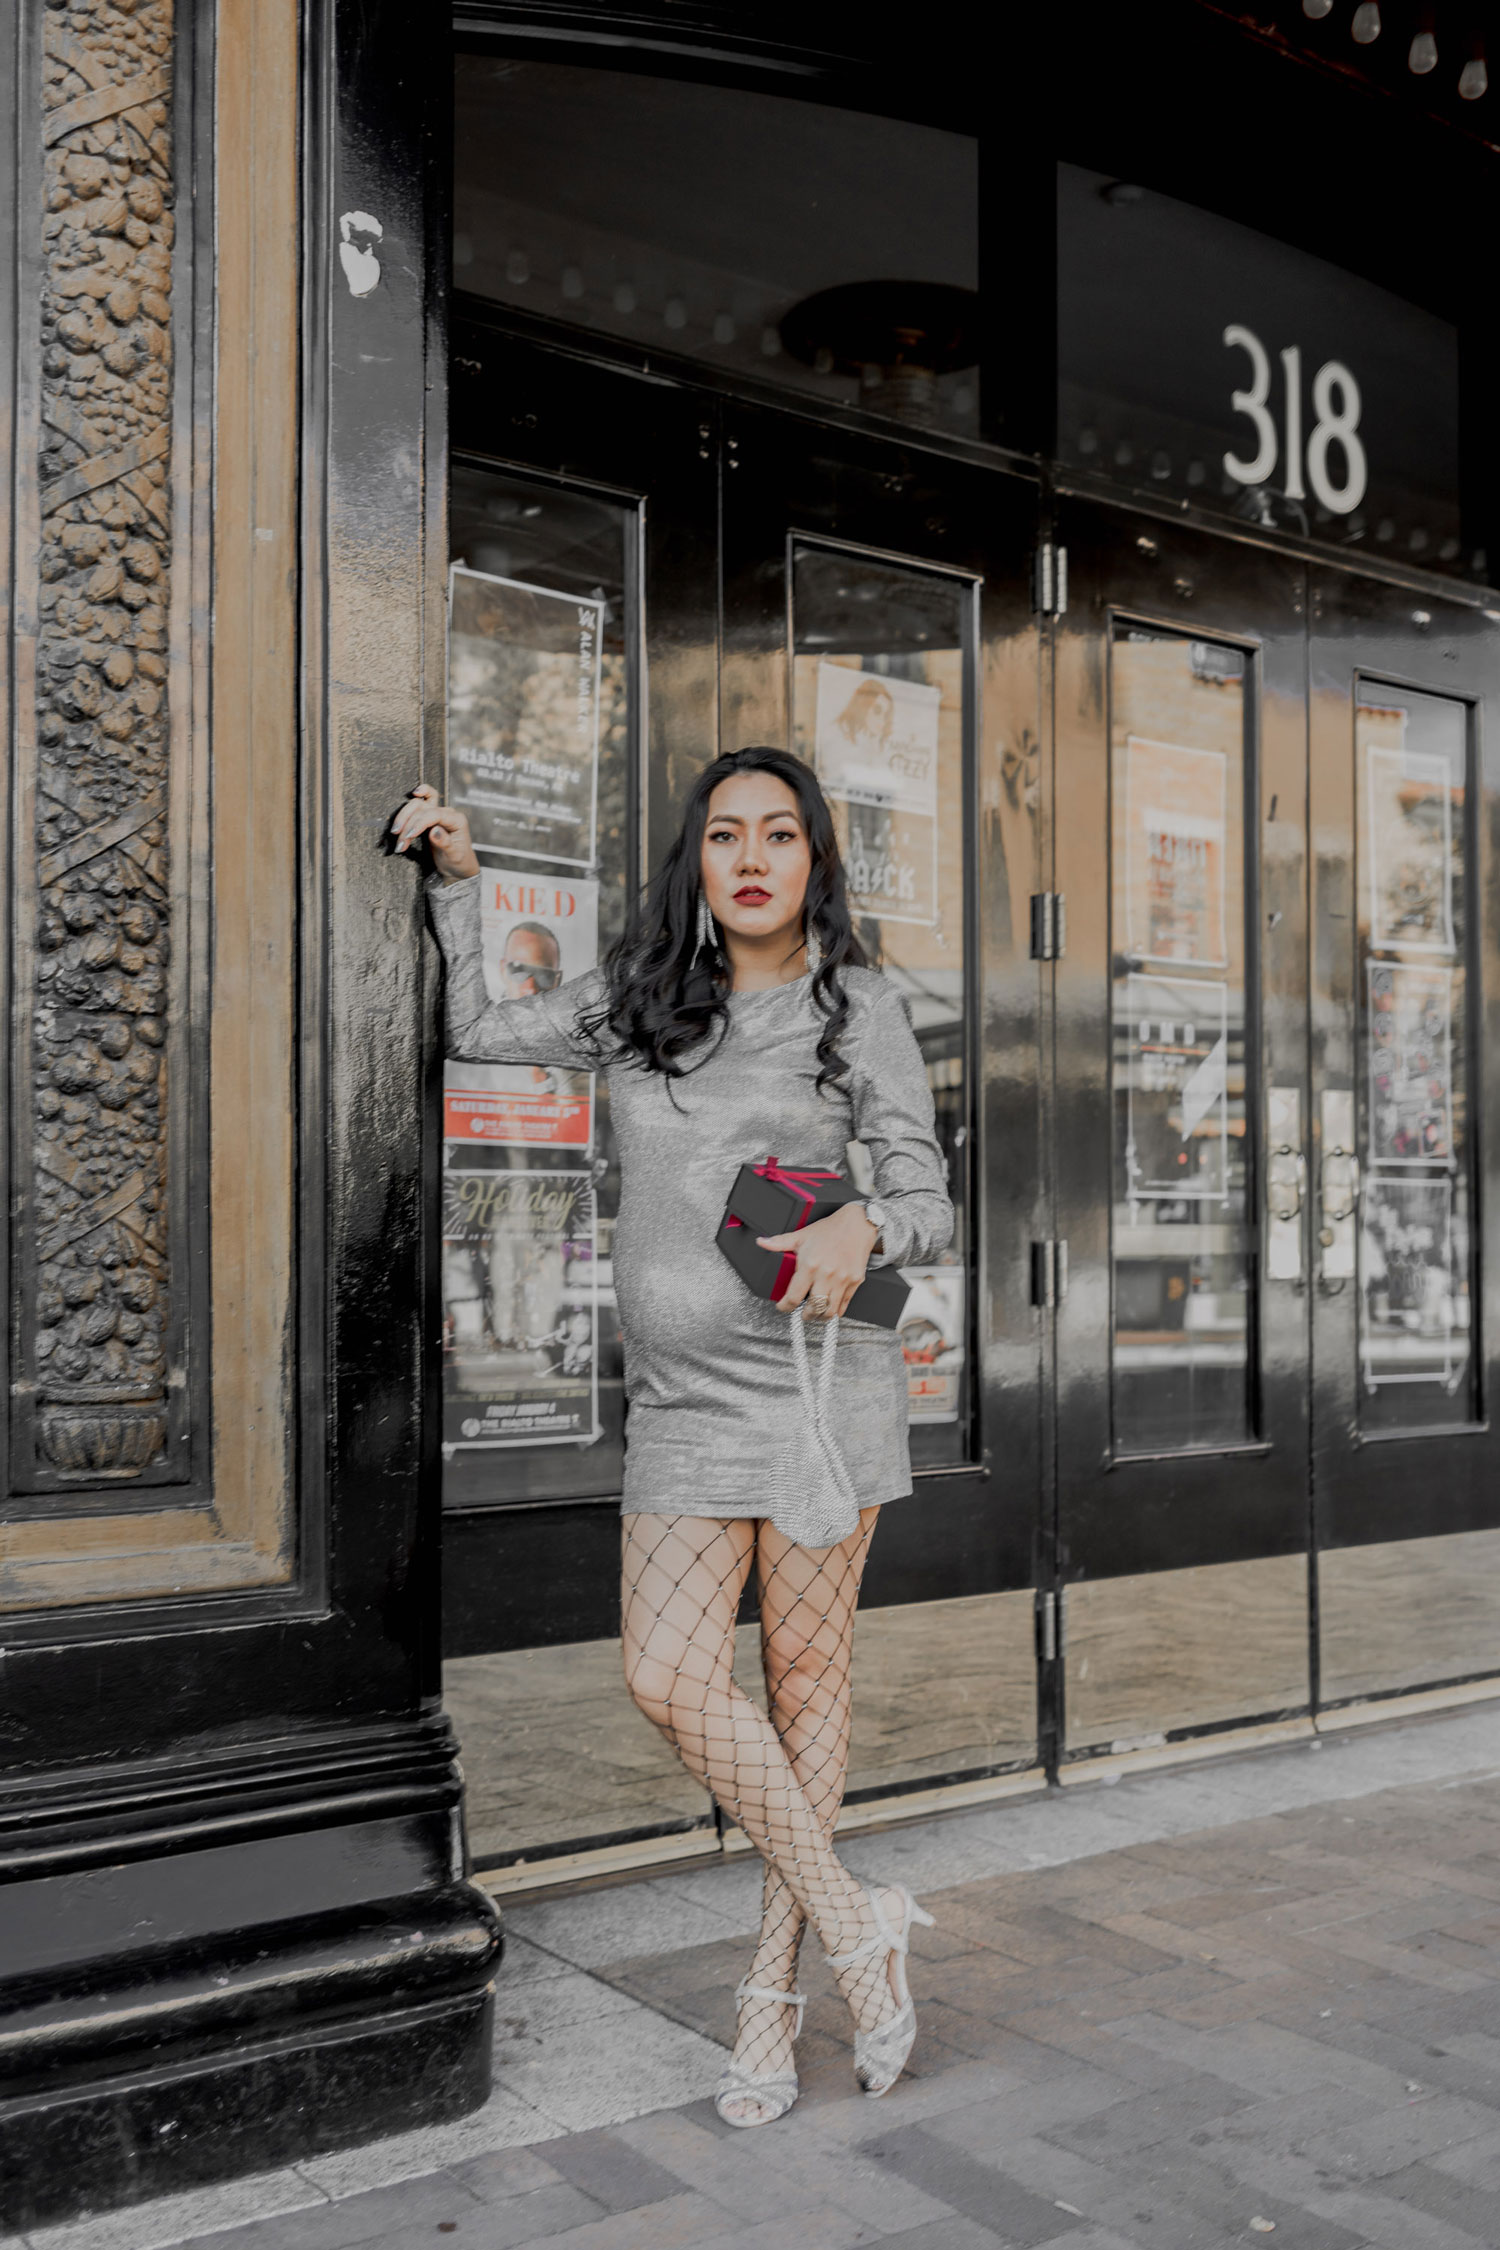 NYE Party Outfit Idea | Metallic and Silver #GoodVibesGifting Day 8_12-24-2018_Molly Larsen IG @thevibescloset_allaboutgoodvibes.com